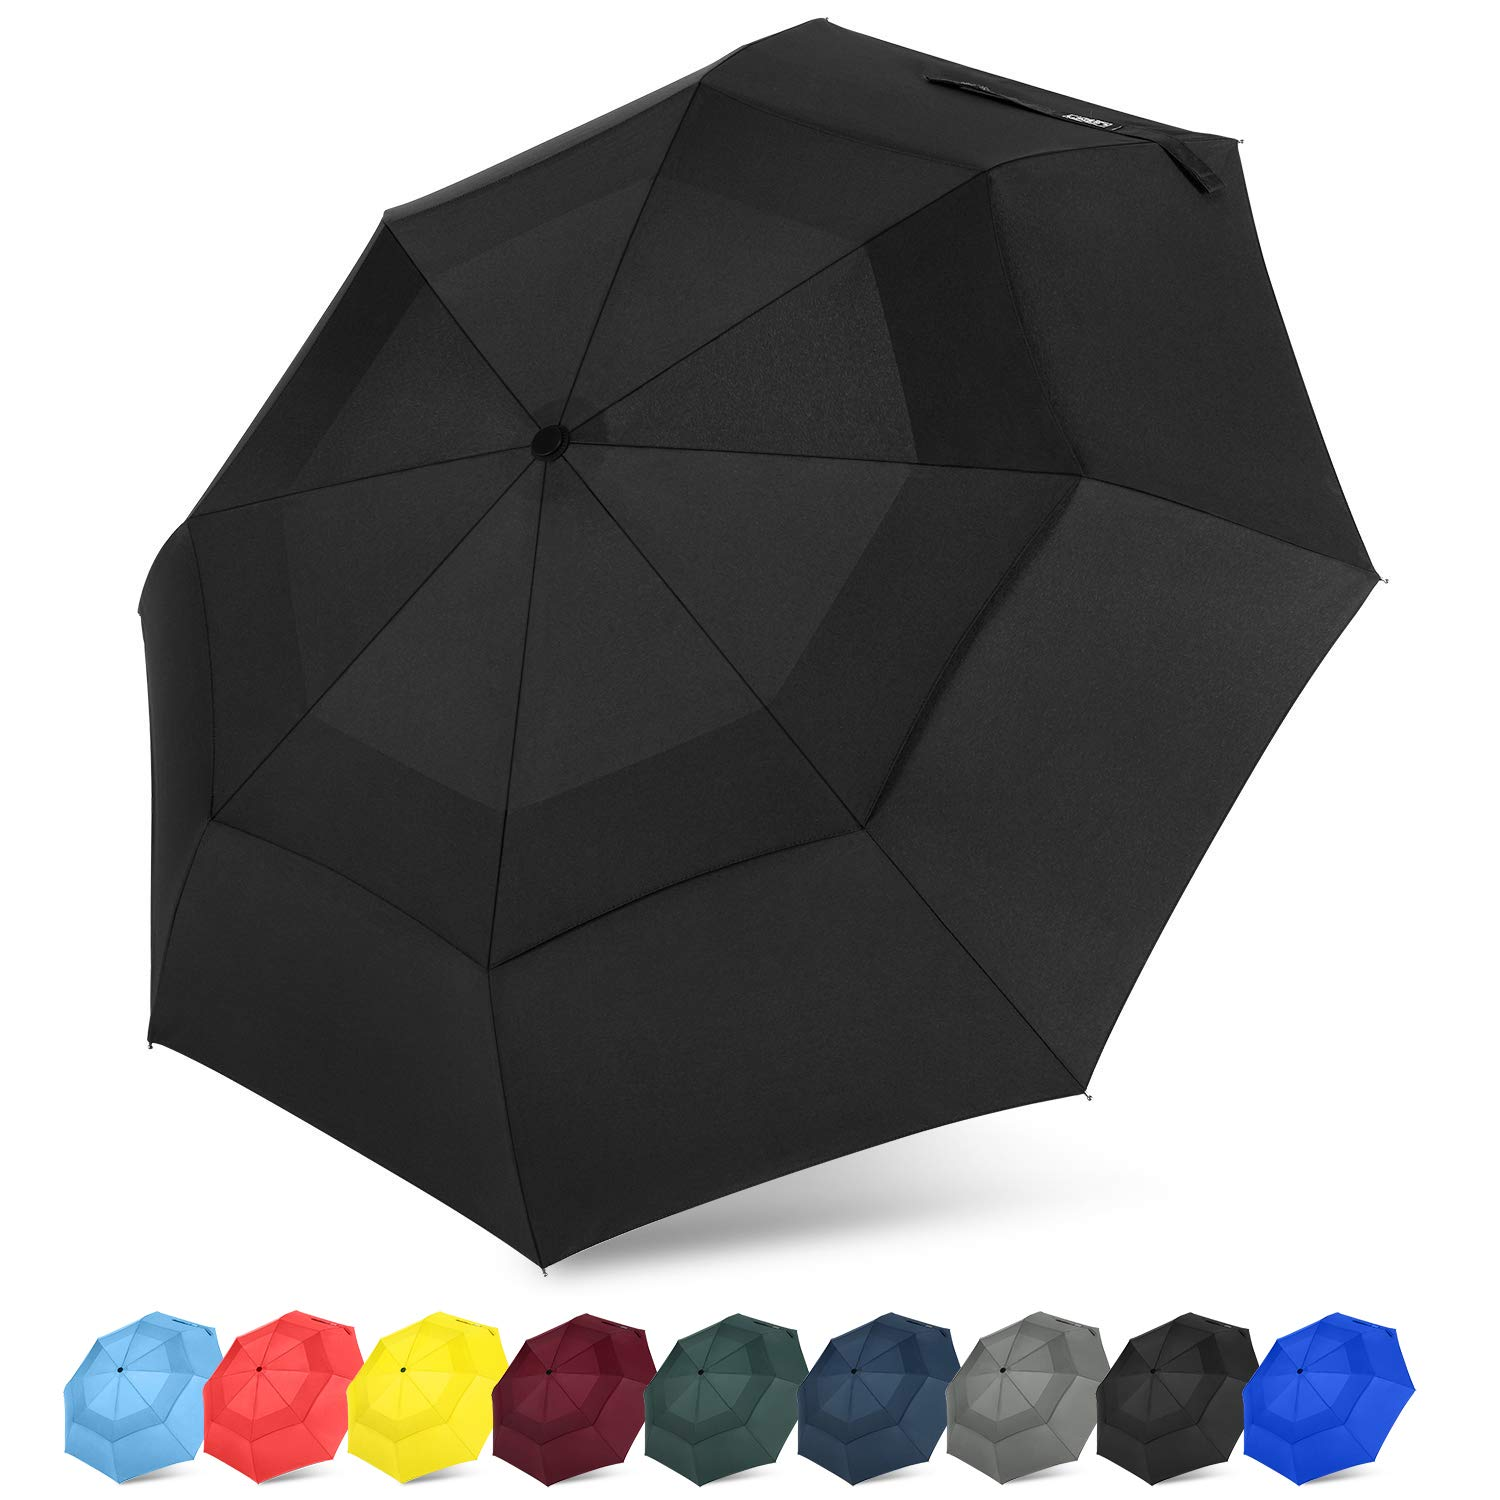 G4Free Compact Travel Umbrella Vented Windproof Double Canopy Auto Open/Close Folding Umbrella with SAFE LOCK (Black)